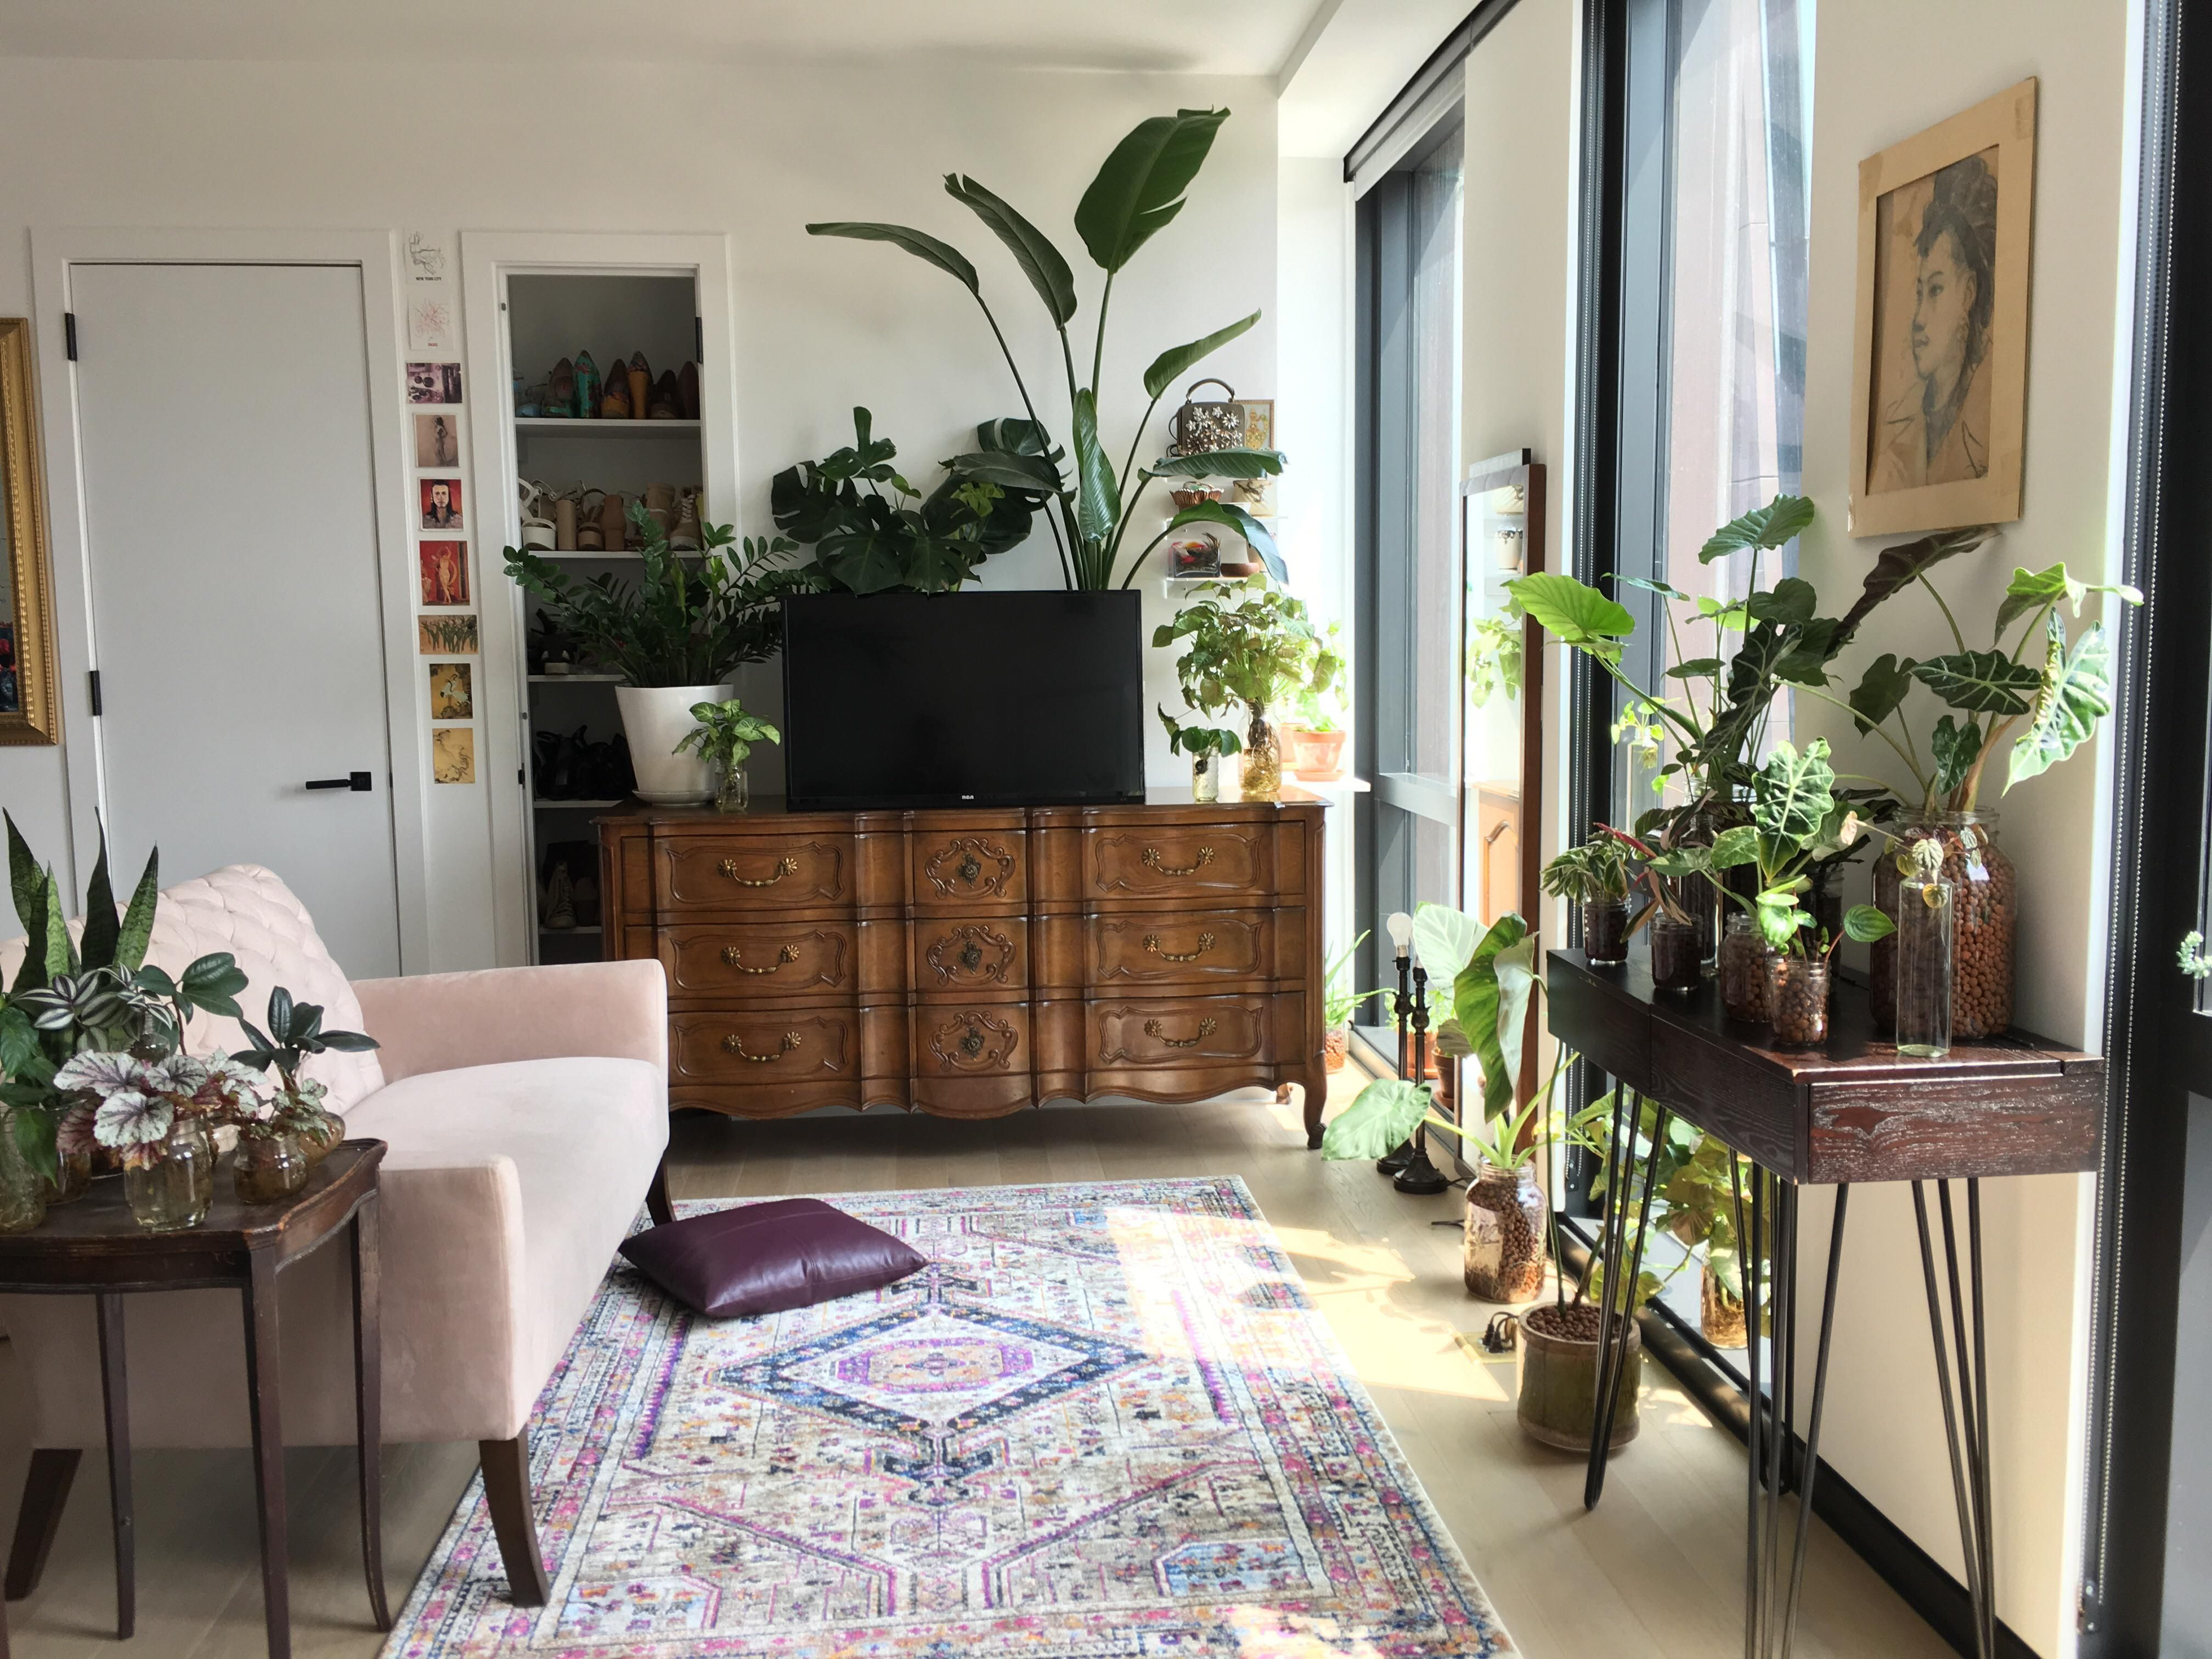 Finally Cleaned My Apartment And Added New Plants Houseplants Living Room Without Tv Living Room Setup Living Room Plants